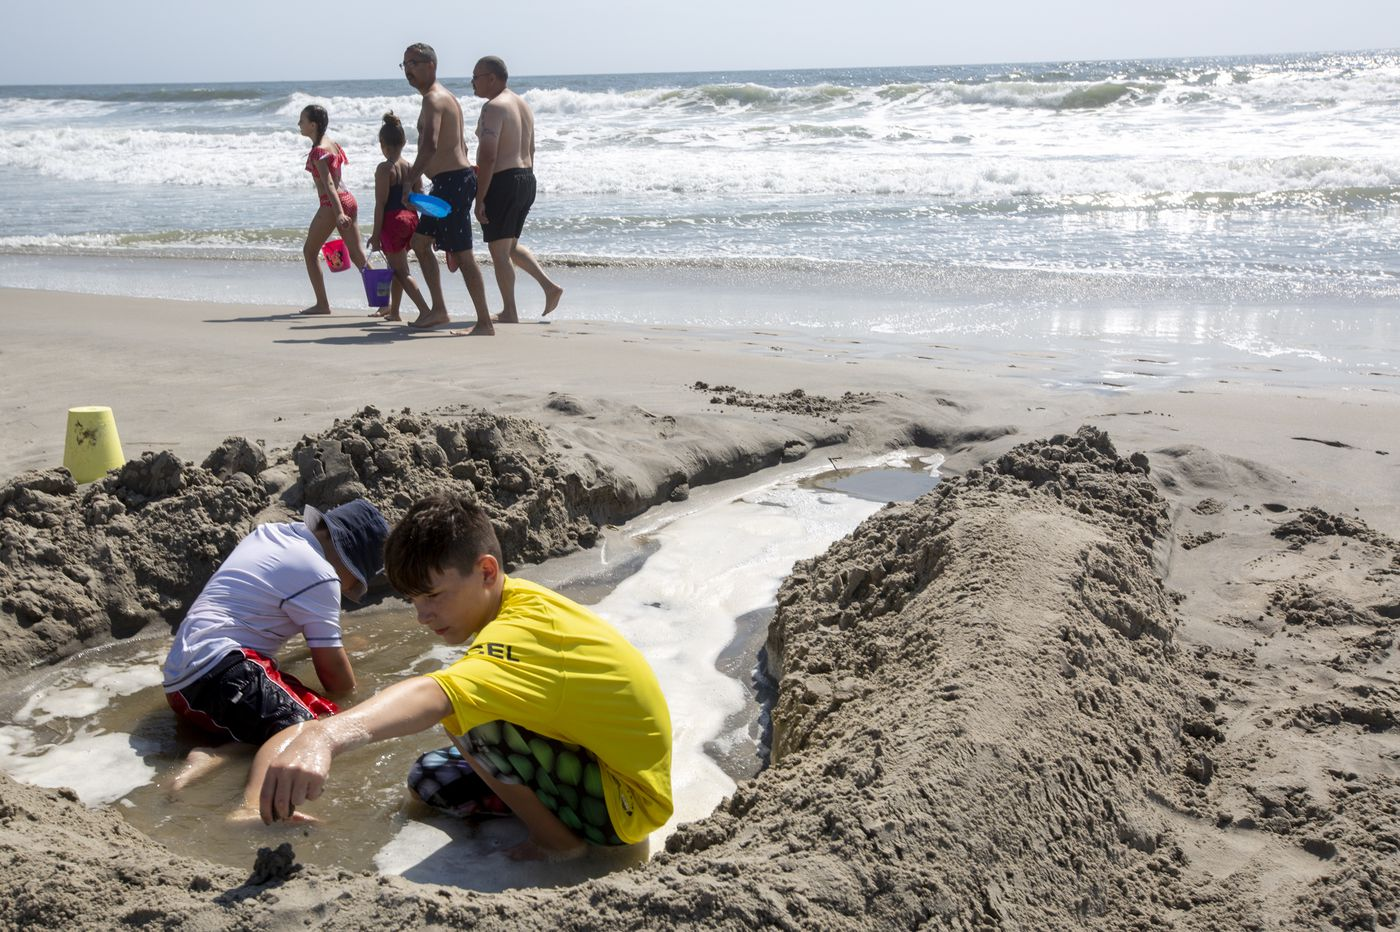 One last sandcastle: at Shore, a Labor Day end to summer 2019